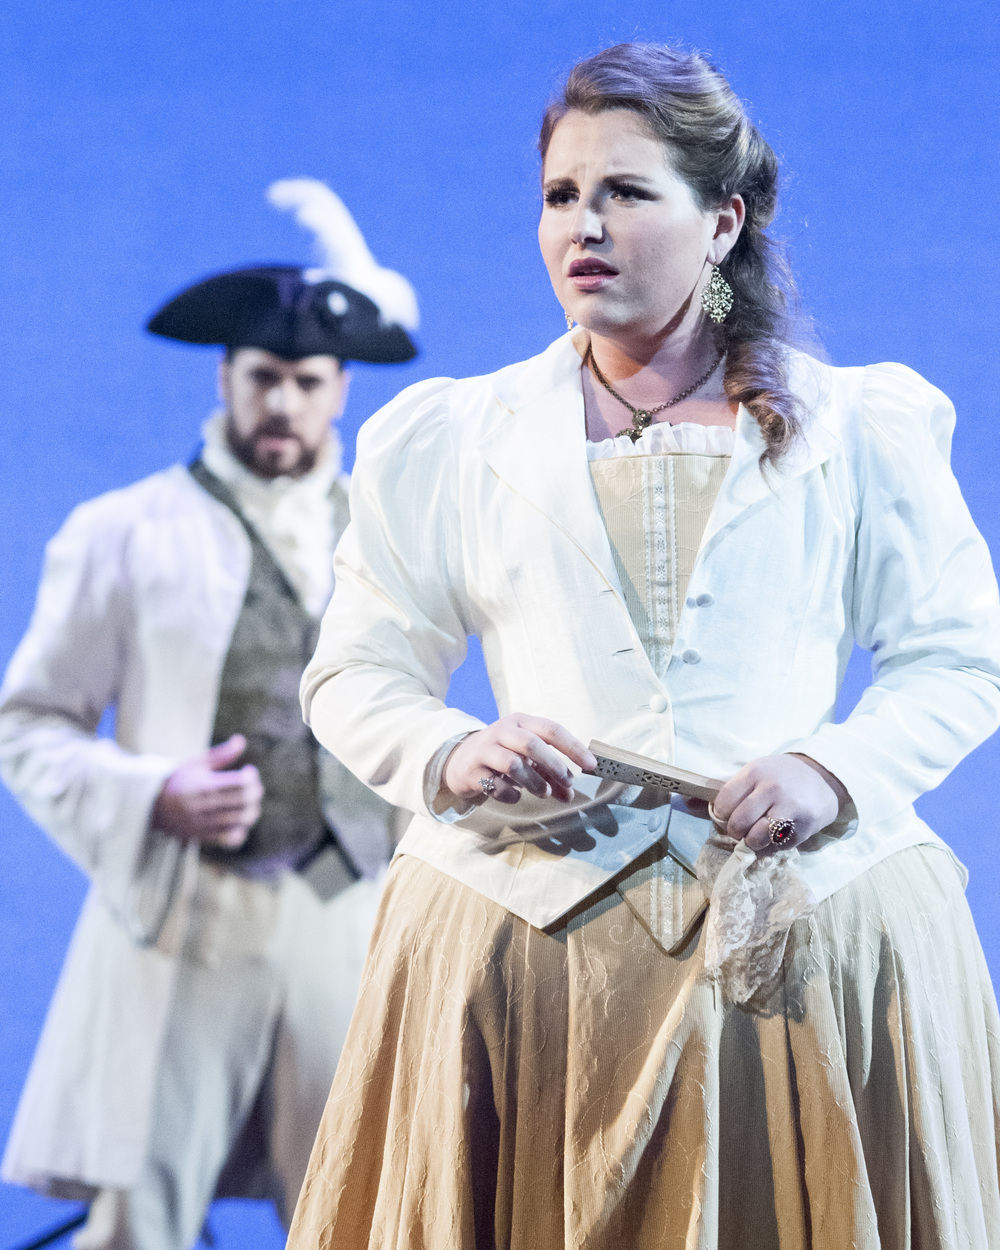 032_Don Giovanni_18Nov2015.jpg